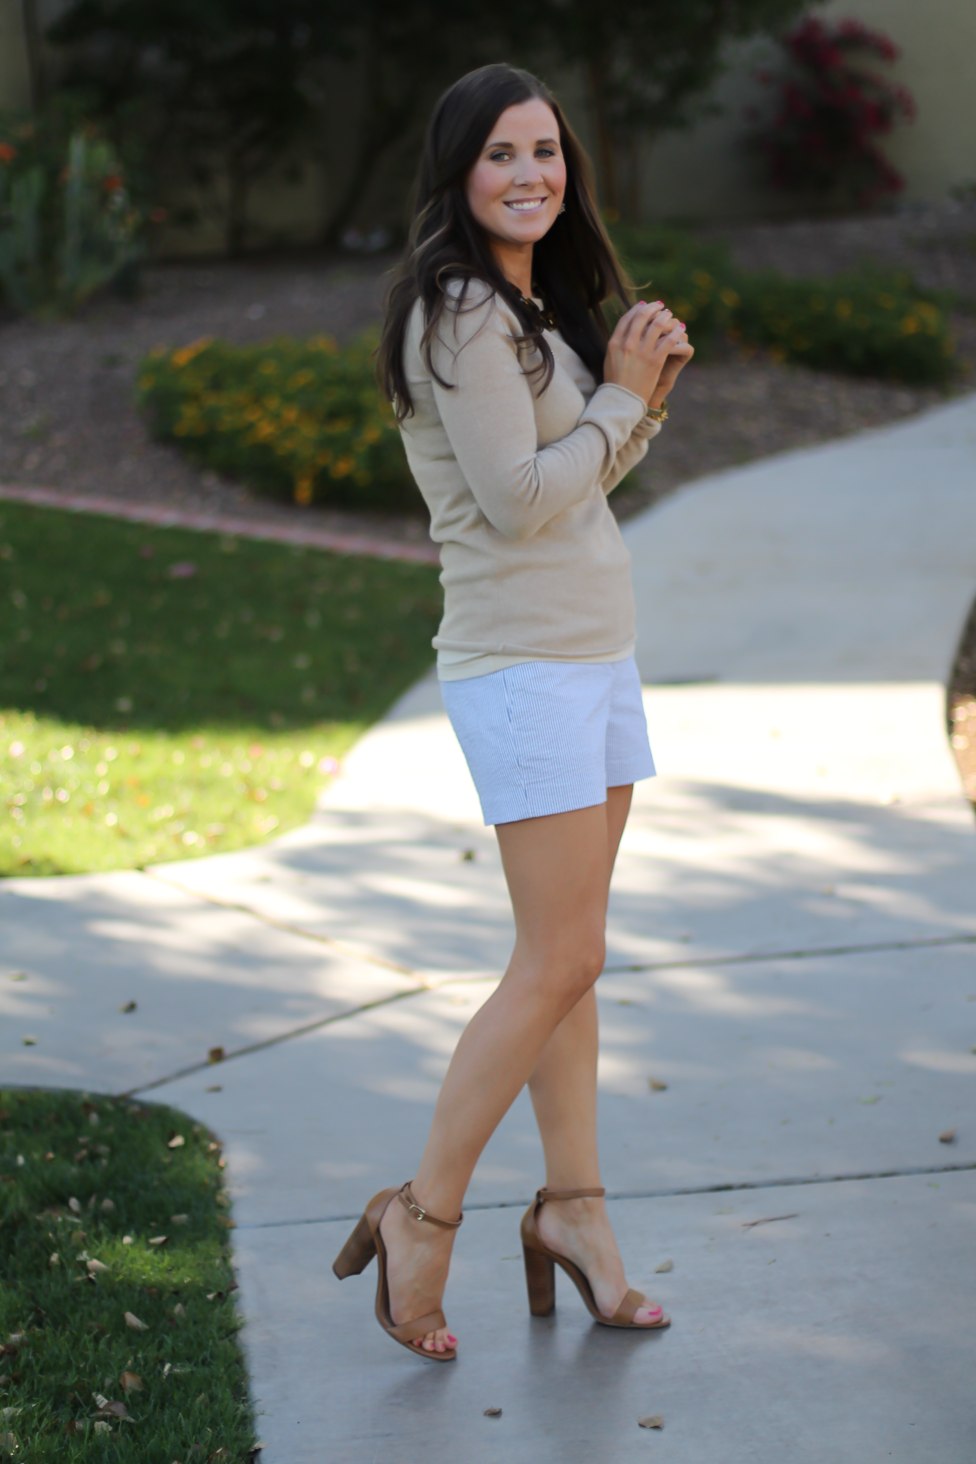 Seersucker Shorts, Tan Cashmere Sweater, Tan Leather Ankle Strap Heels, Tan Leather Chain Strap Bag, Ann Taylor, J.Crew, Steve Madden, Chloe  7